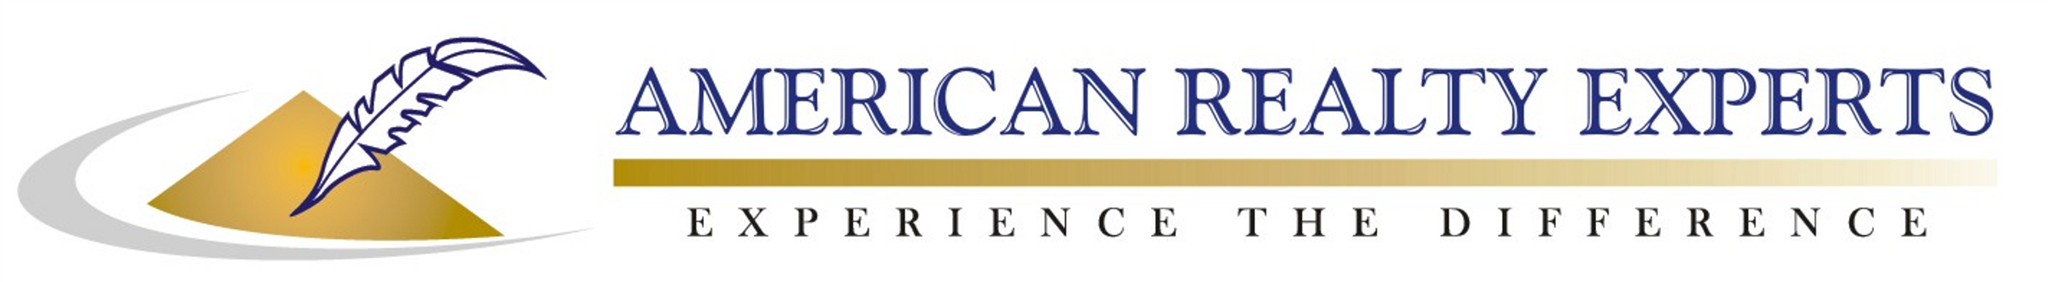 American Realty Experts, Inc.